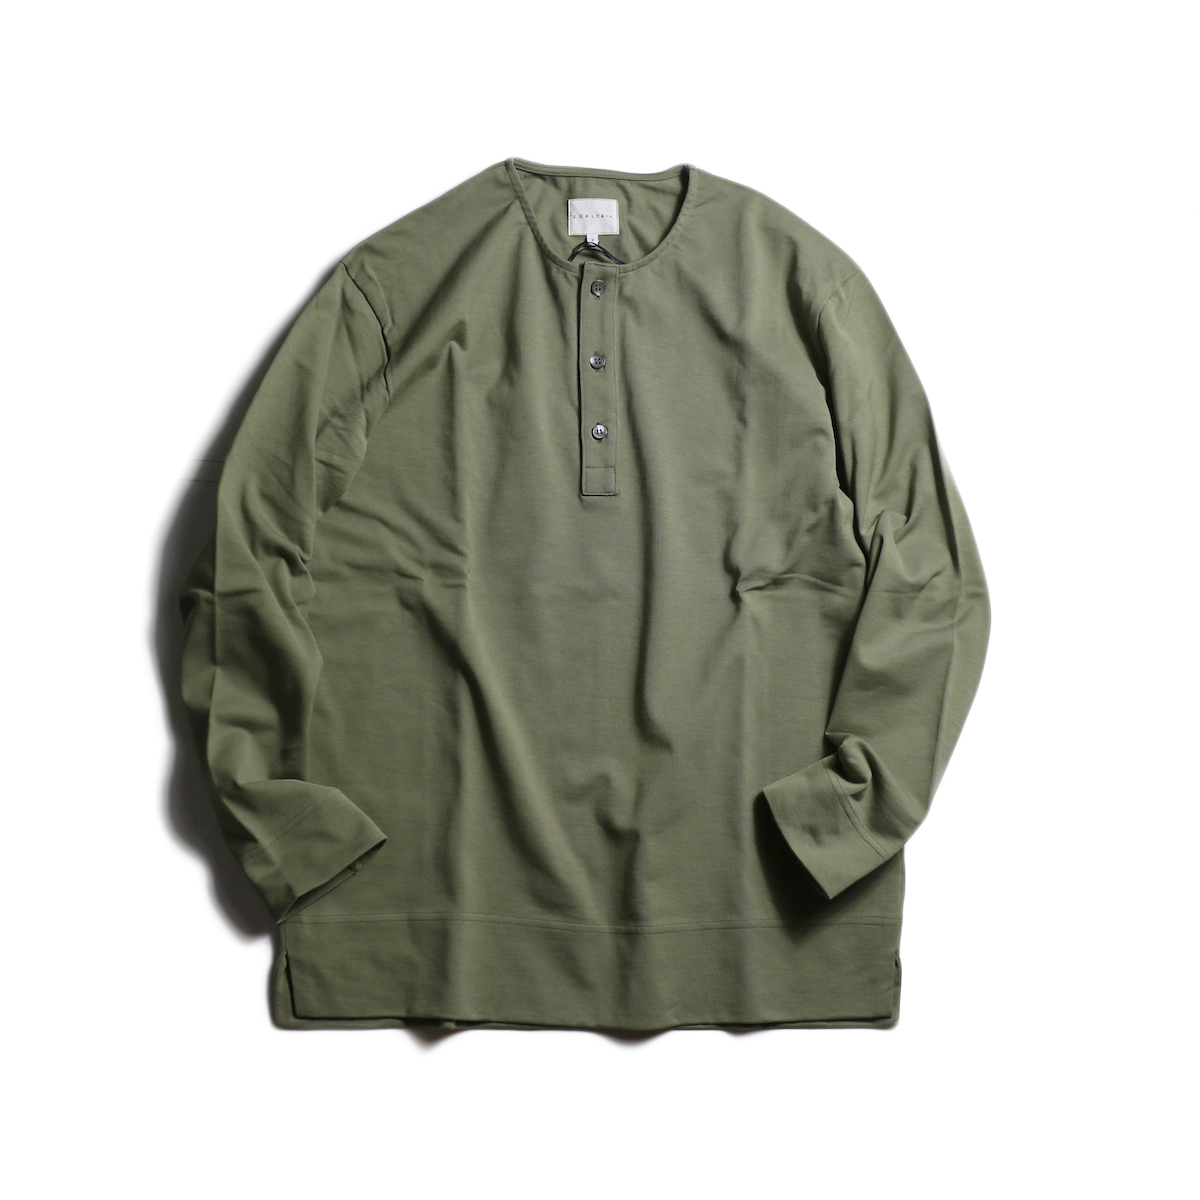 CURLY / CLOUDY 3B LS HENLEY (Olive)